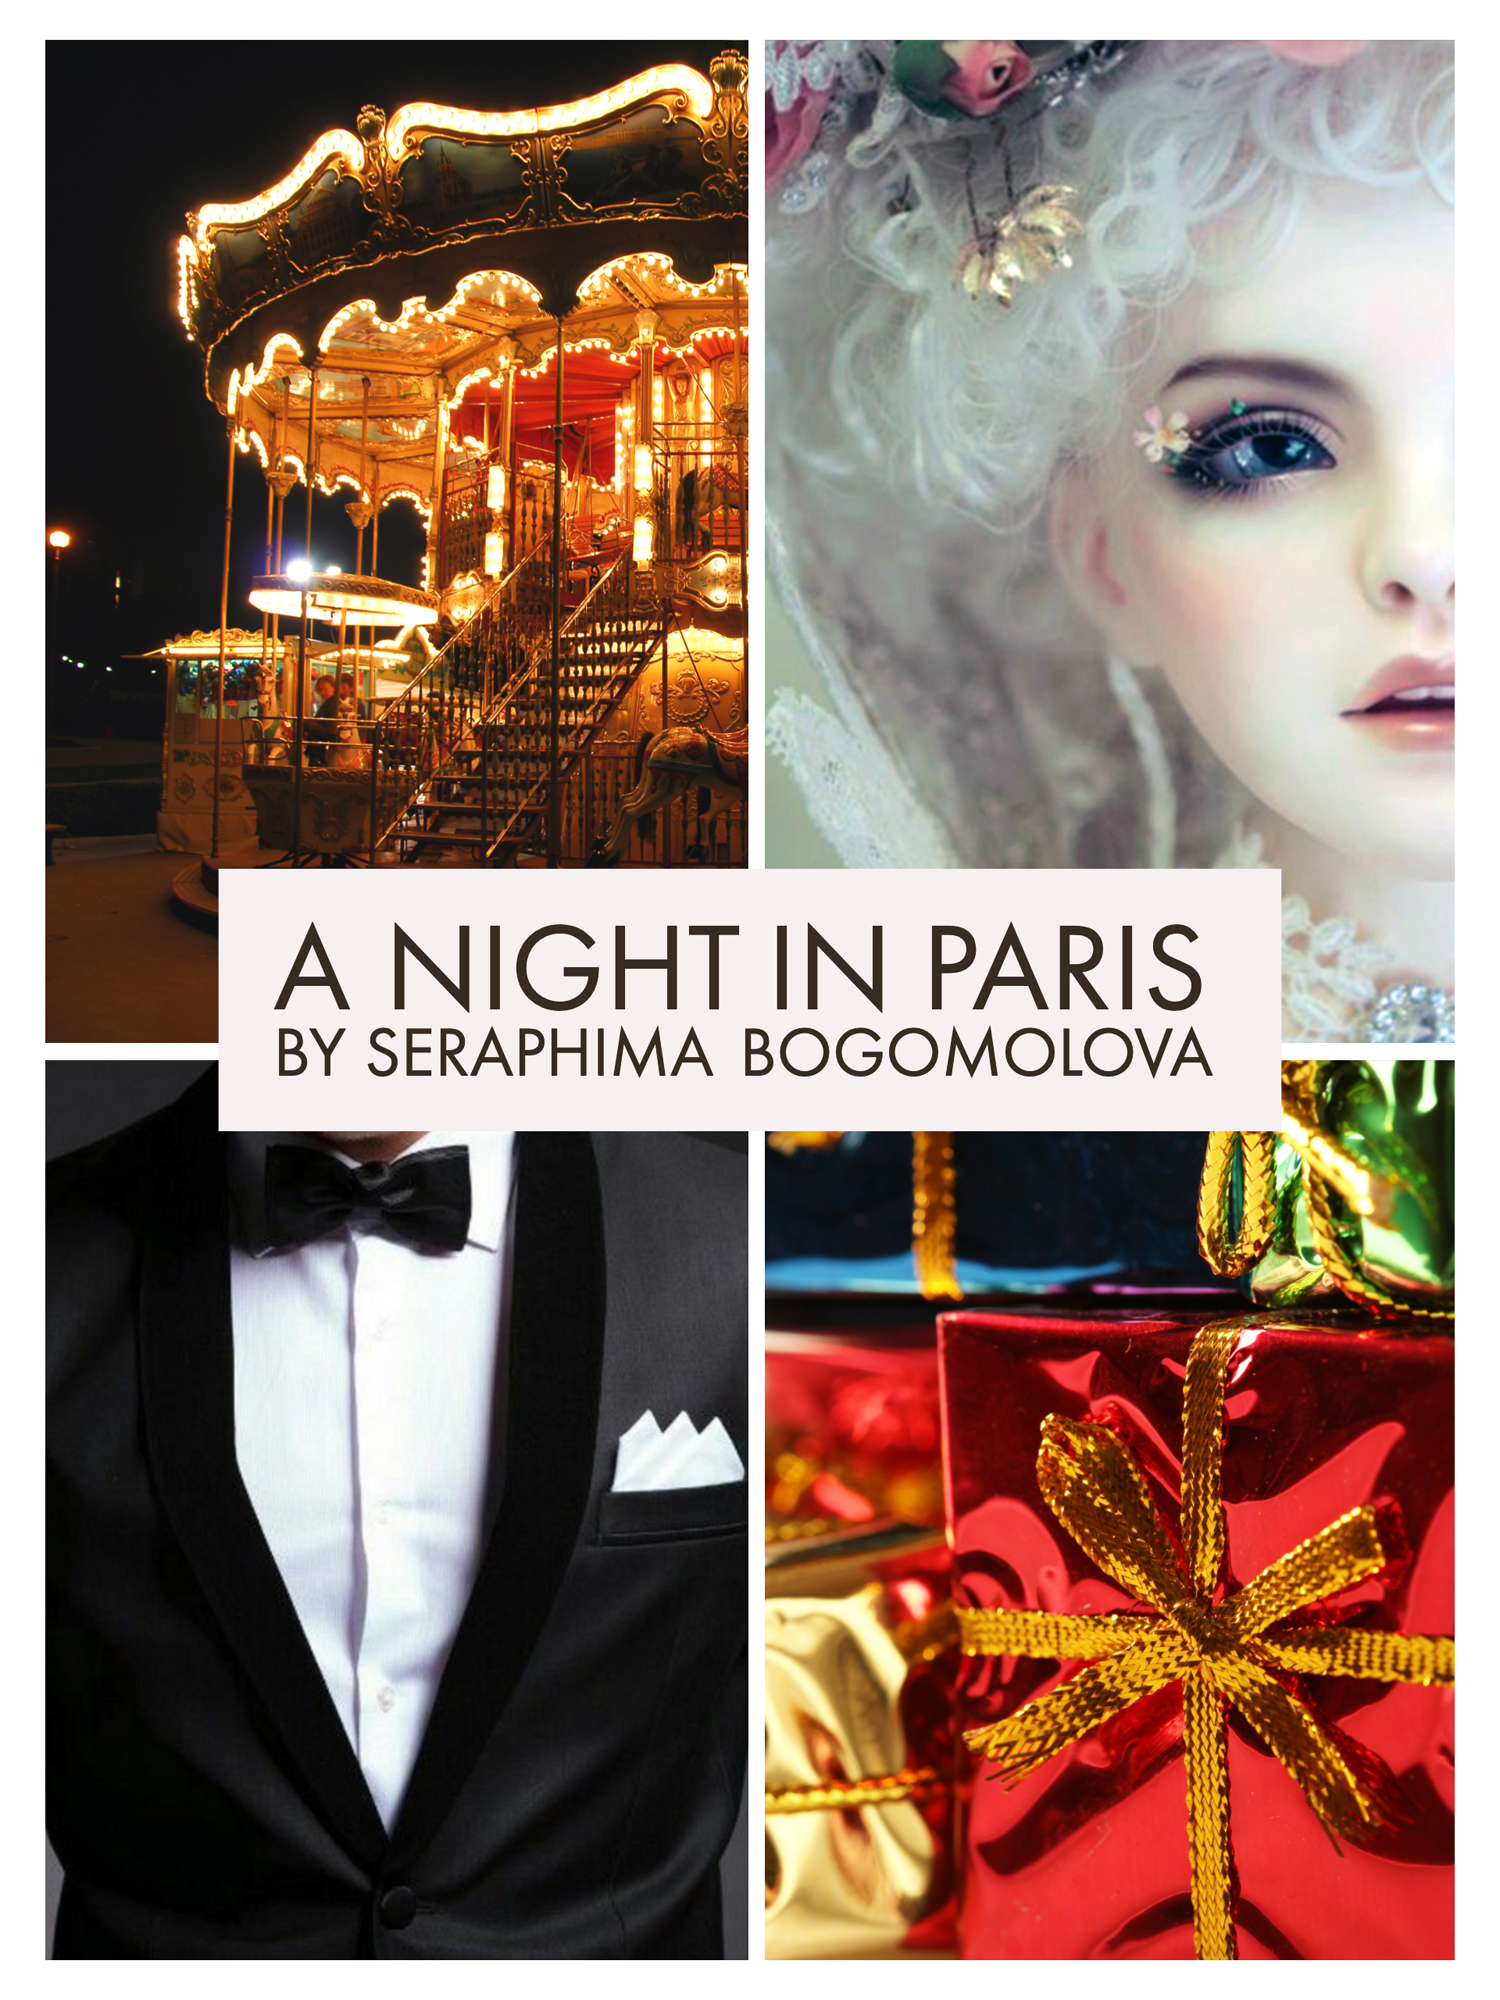 A Night in Paris libretto